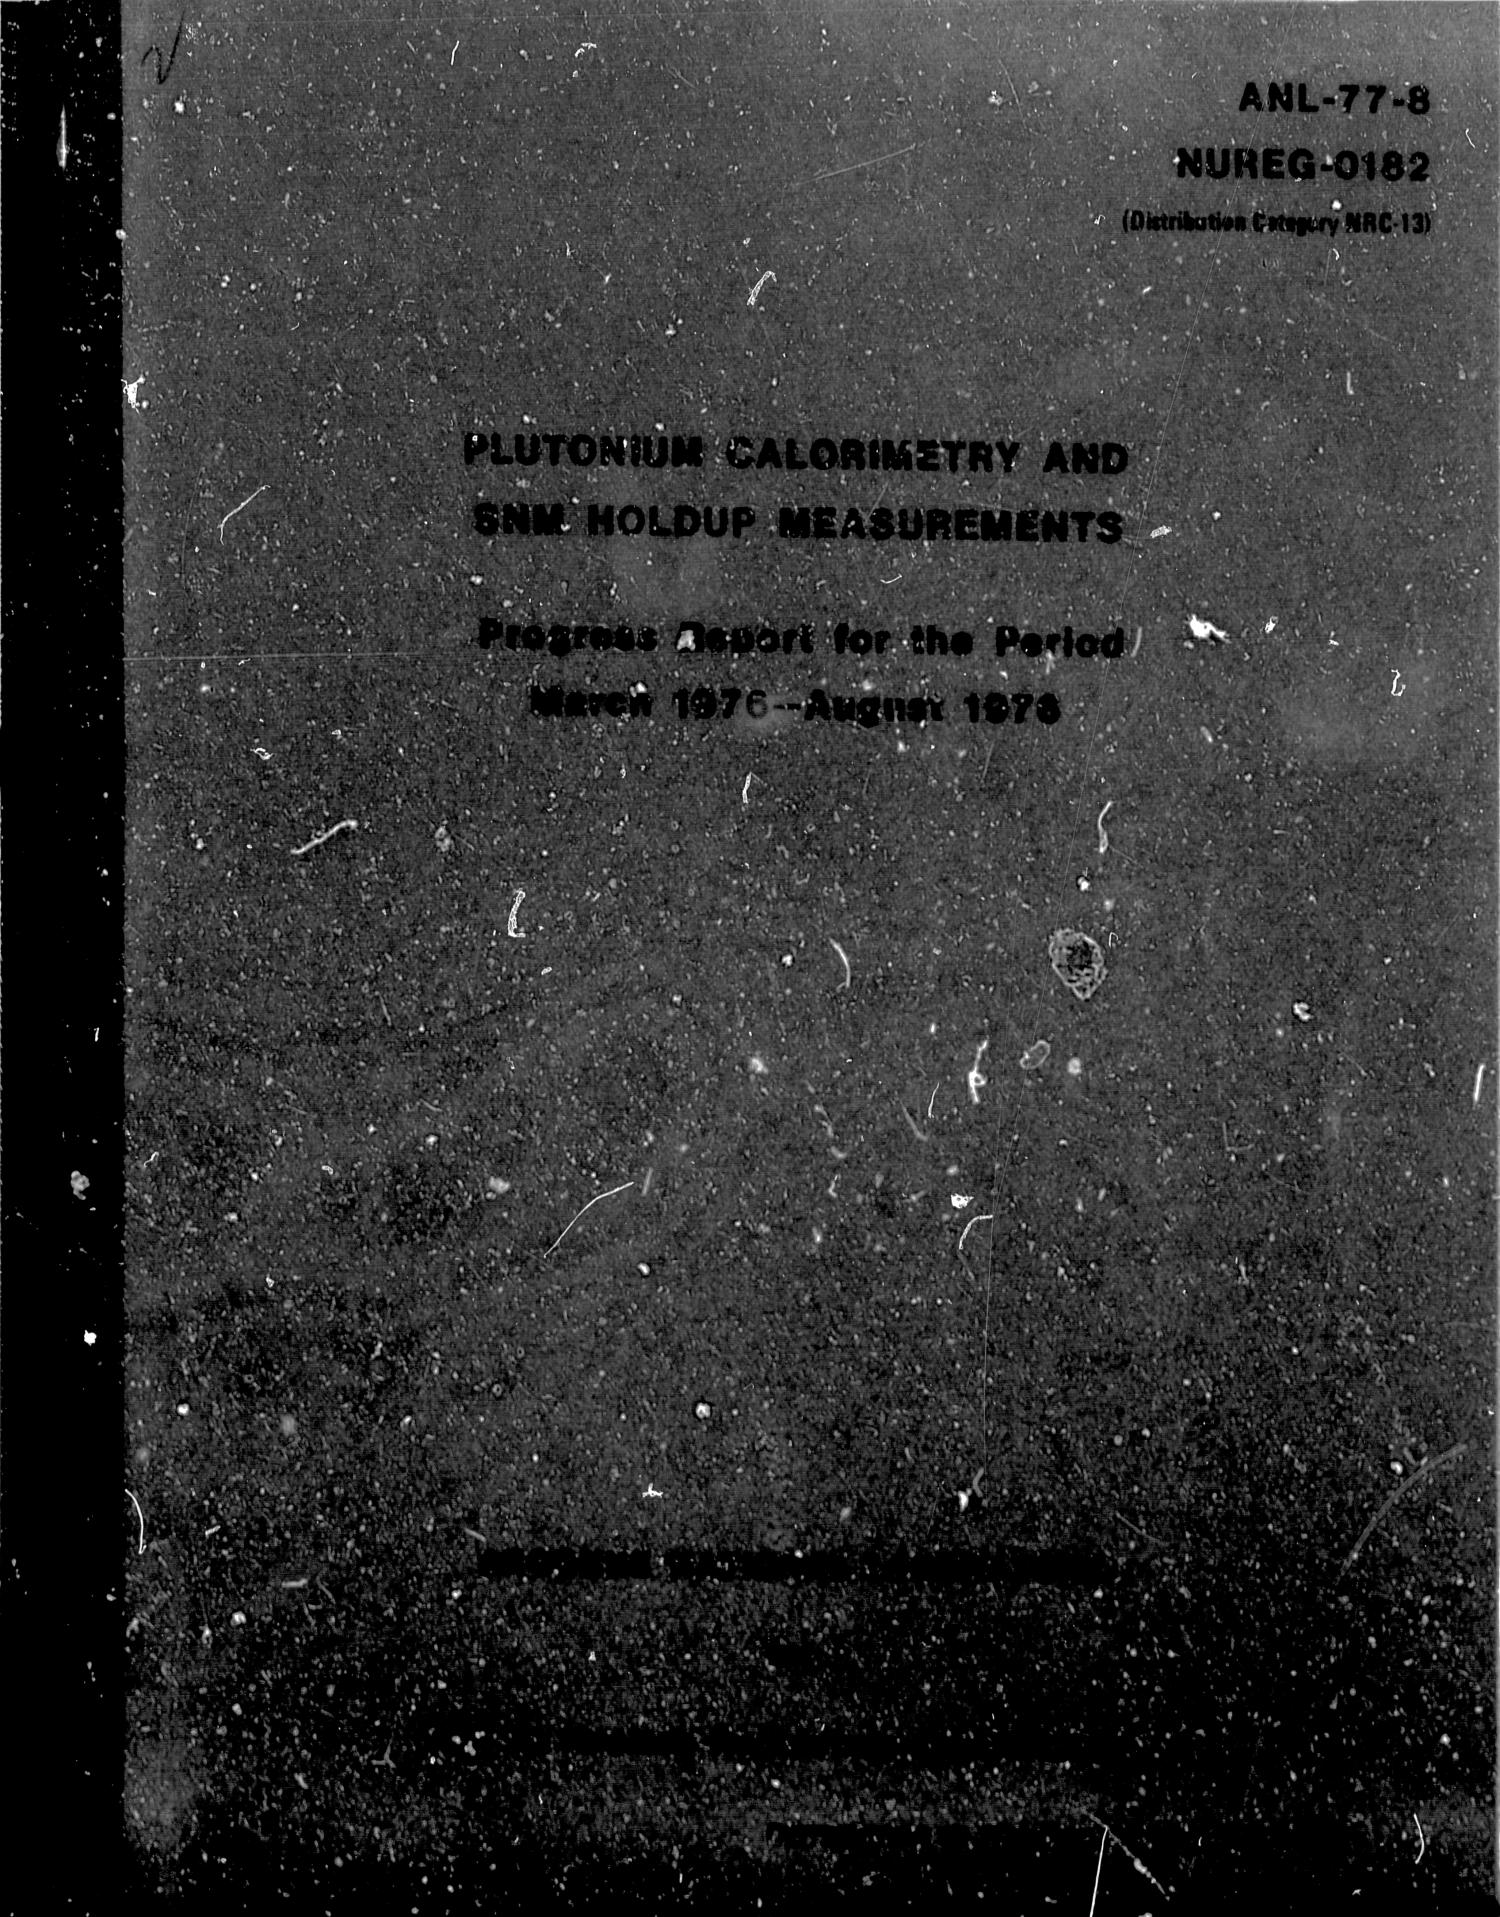 Plutonium Calorimetry and SNM Holdup Measurements, Progress Report: March 1976-August 1976                                                                                                      Front Cover